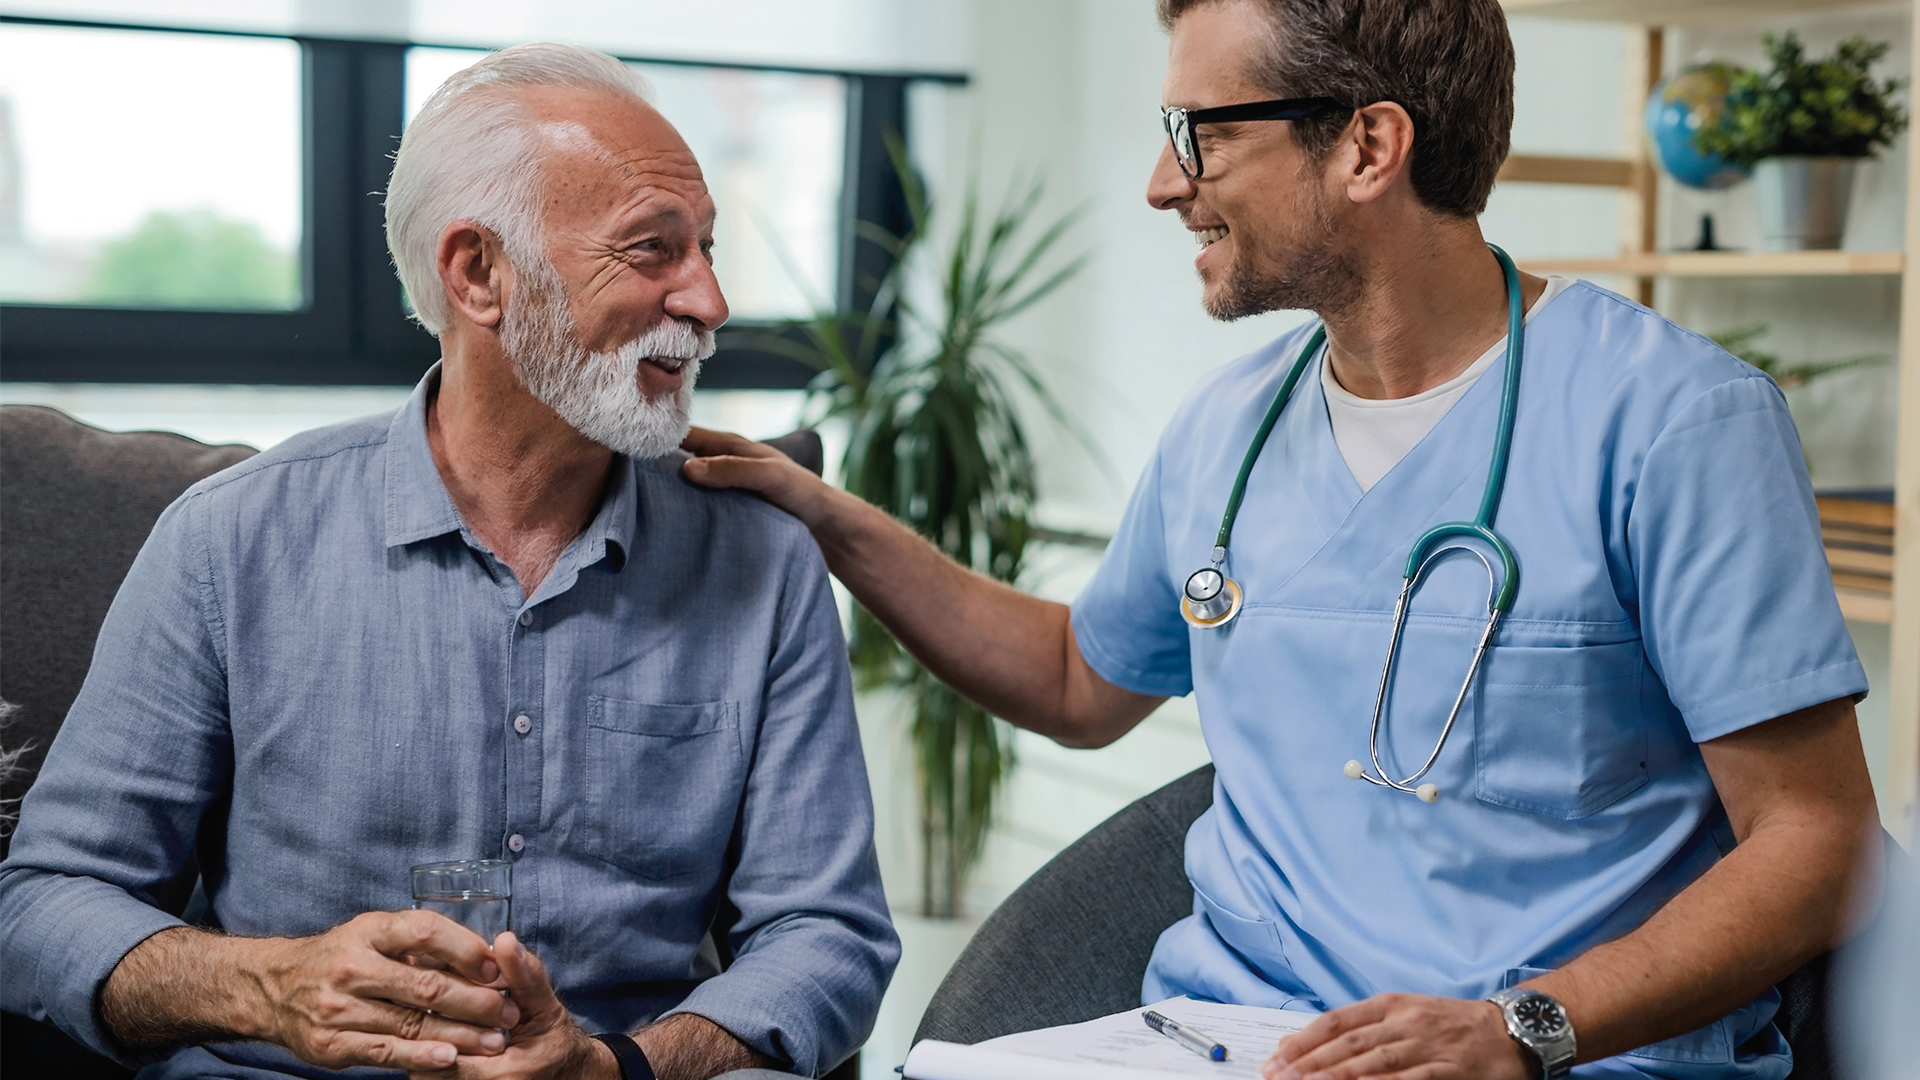 A doctor smiles and chats with his male patient—friendly interactions are the experiences health plans desire for members.